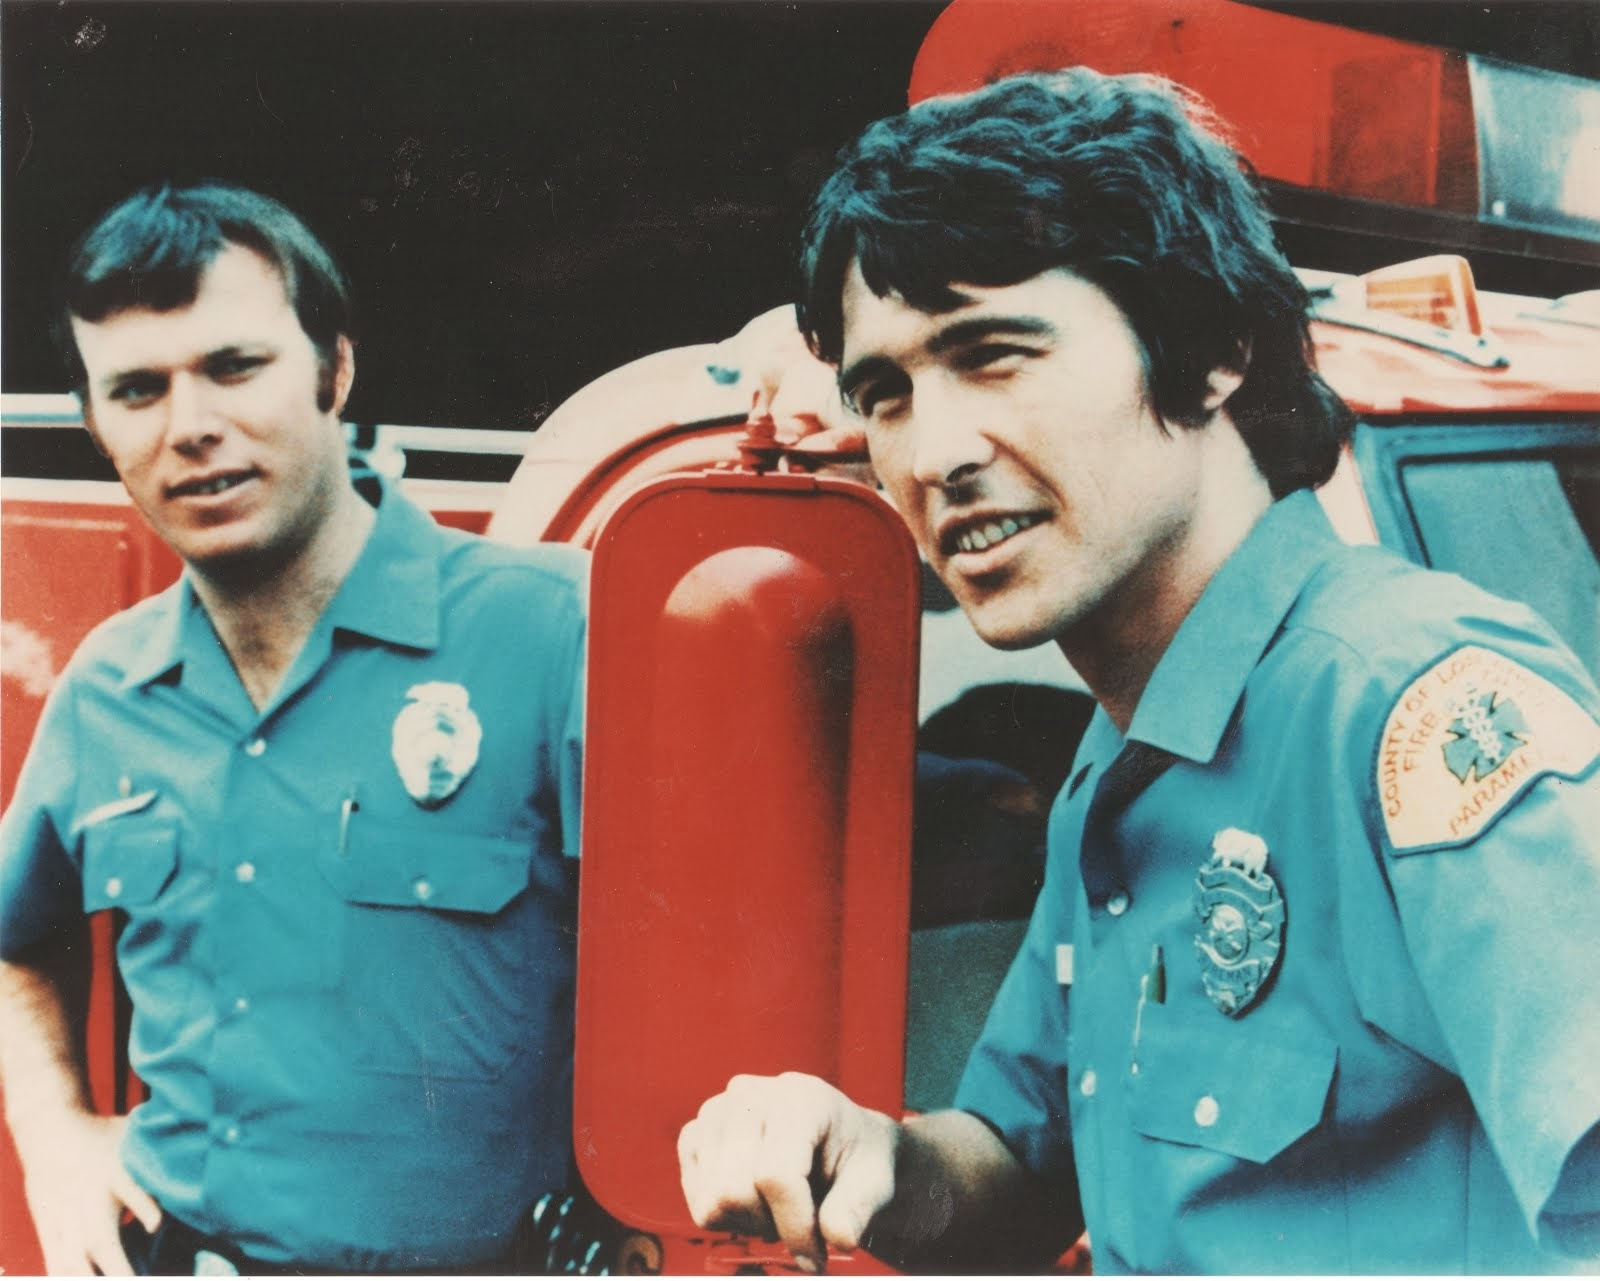 Thomas Q Kimball Fan Of Emergency Squad 51 with Randolph Mantooth and Kevin Tighe